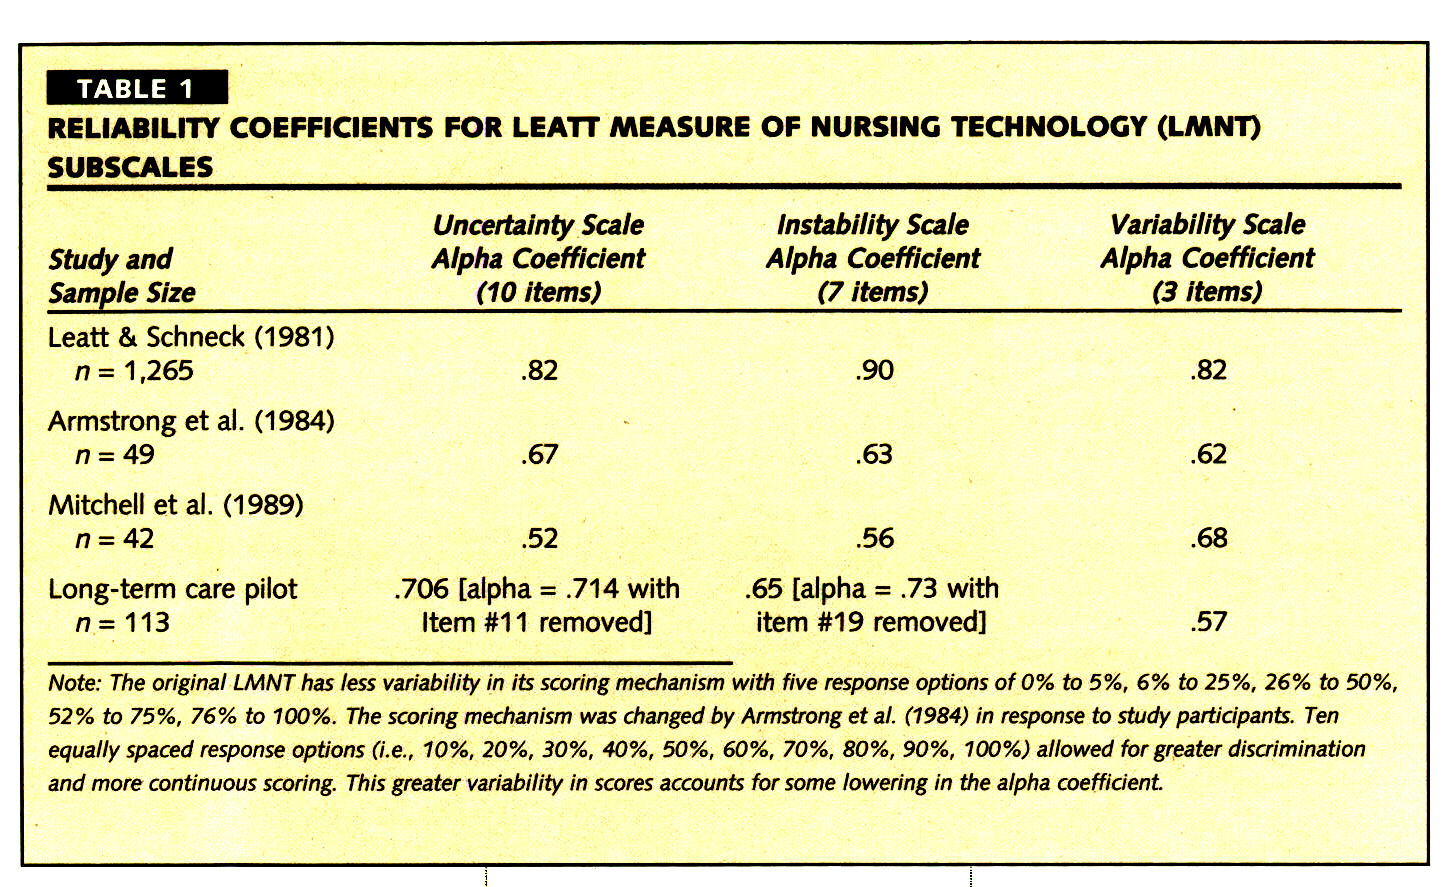 TABLE 1RELIABILITY COEFFICIENTS FOR LEATT MEASURE OF NURSING TECHNOLOGY (LMNT) SUBSCALES